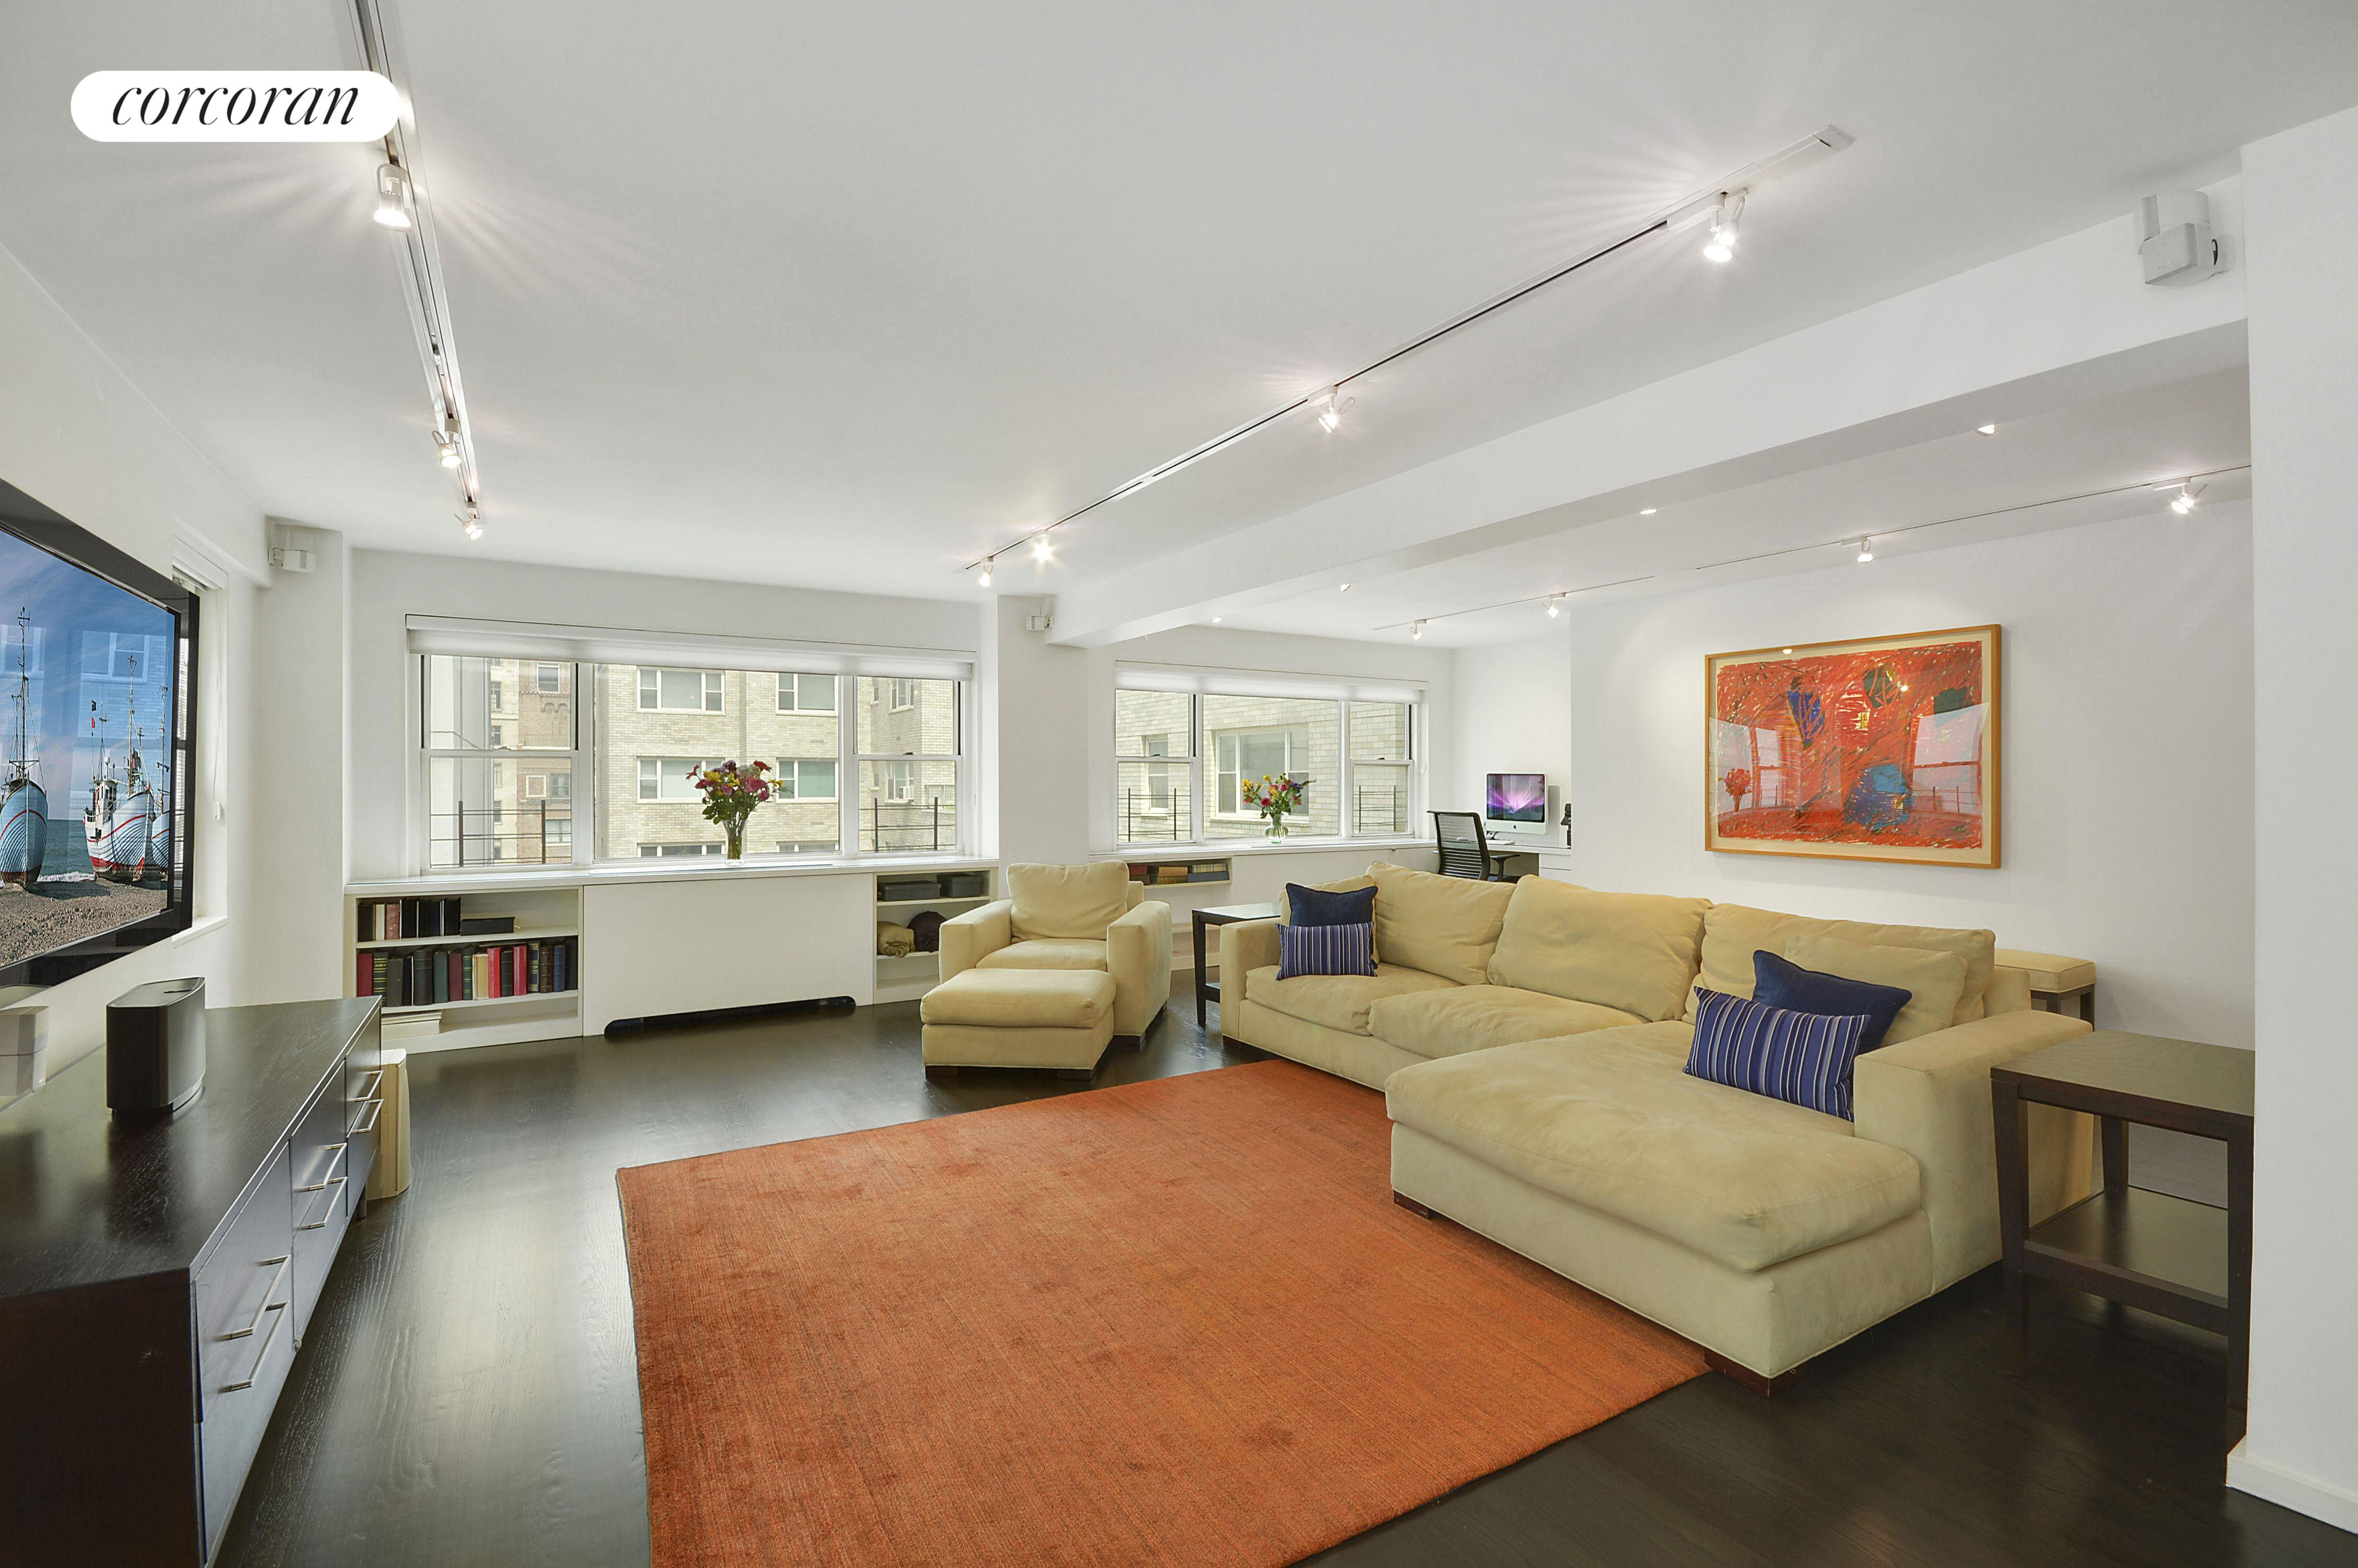 100 West 57th Street, Apt. 18JK